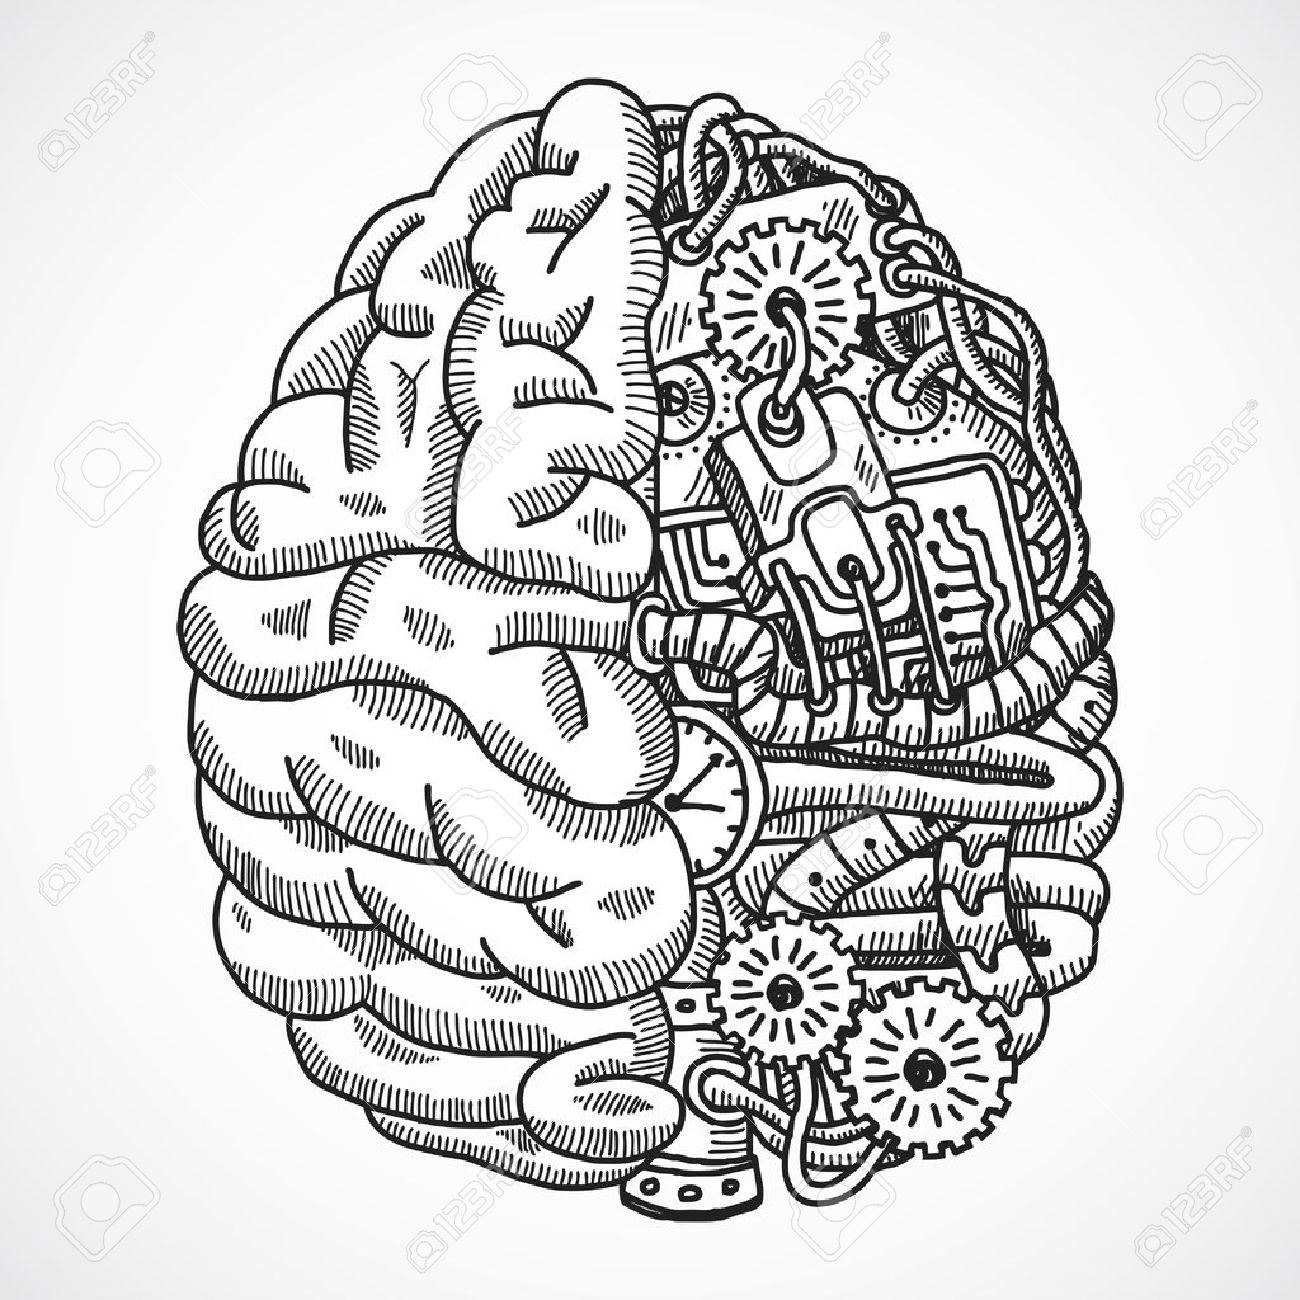 1300x1300 Human Brain As Engineering Processing Machine Sketch Concept